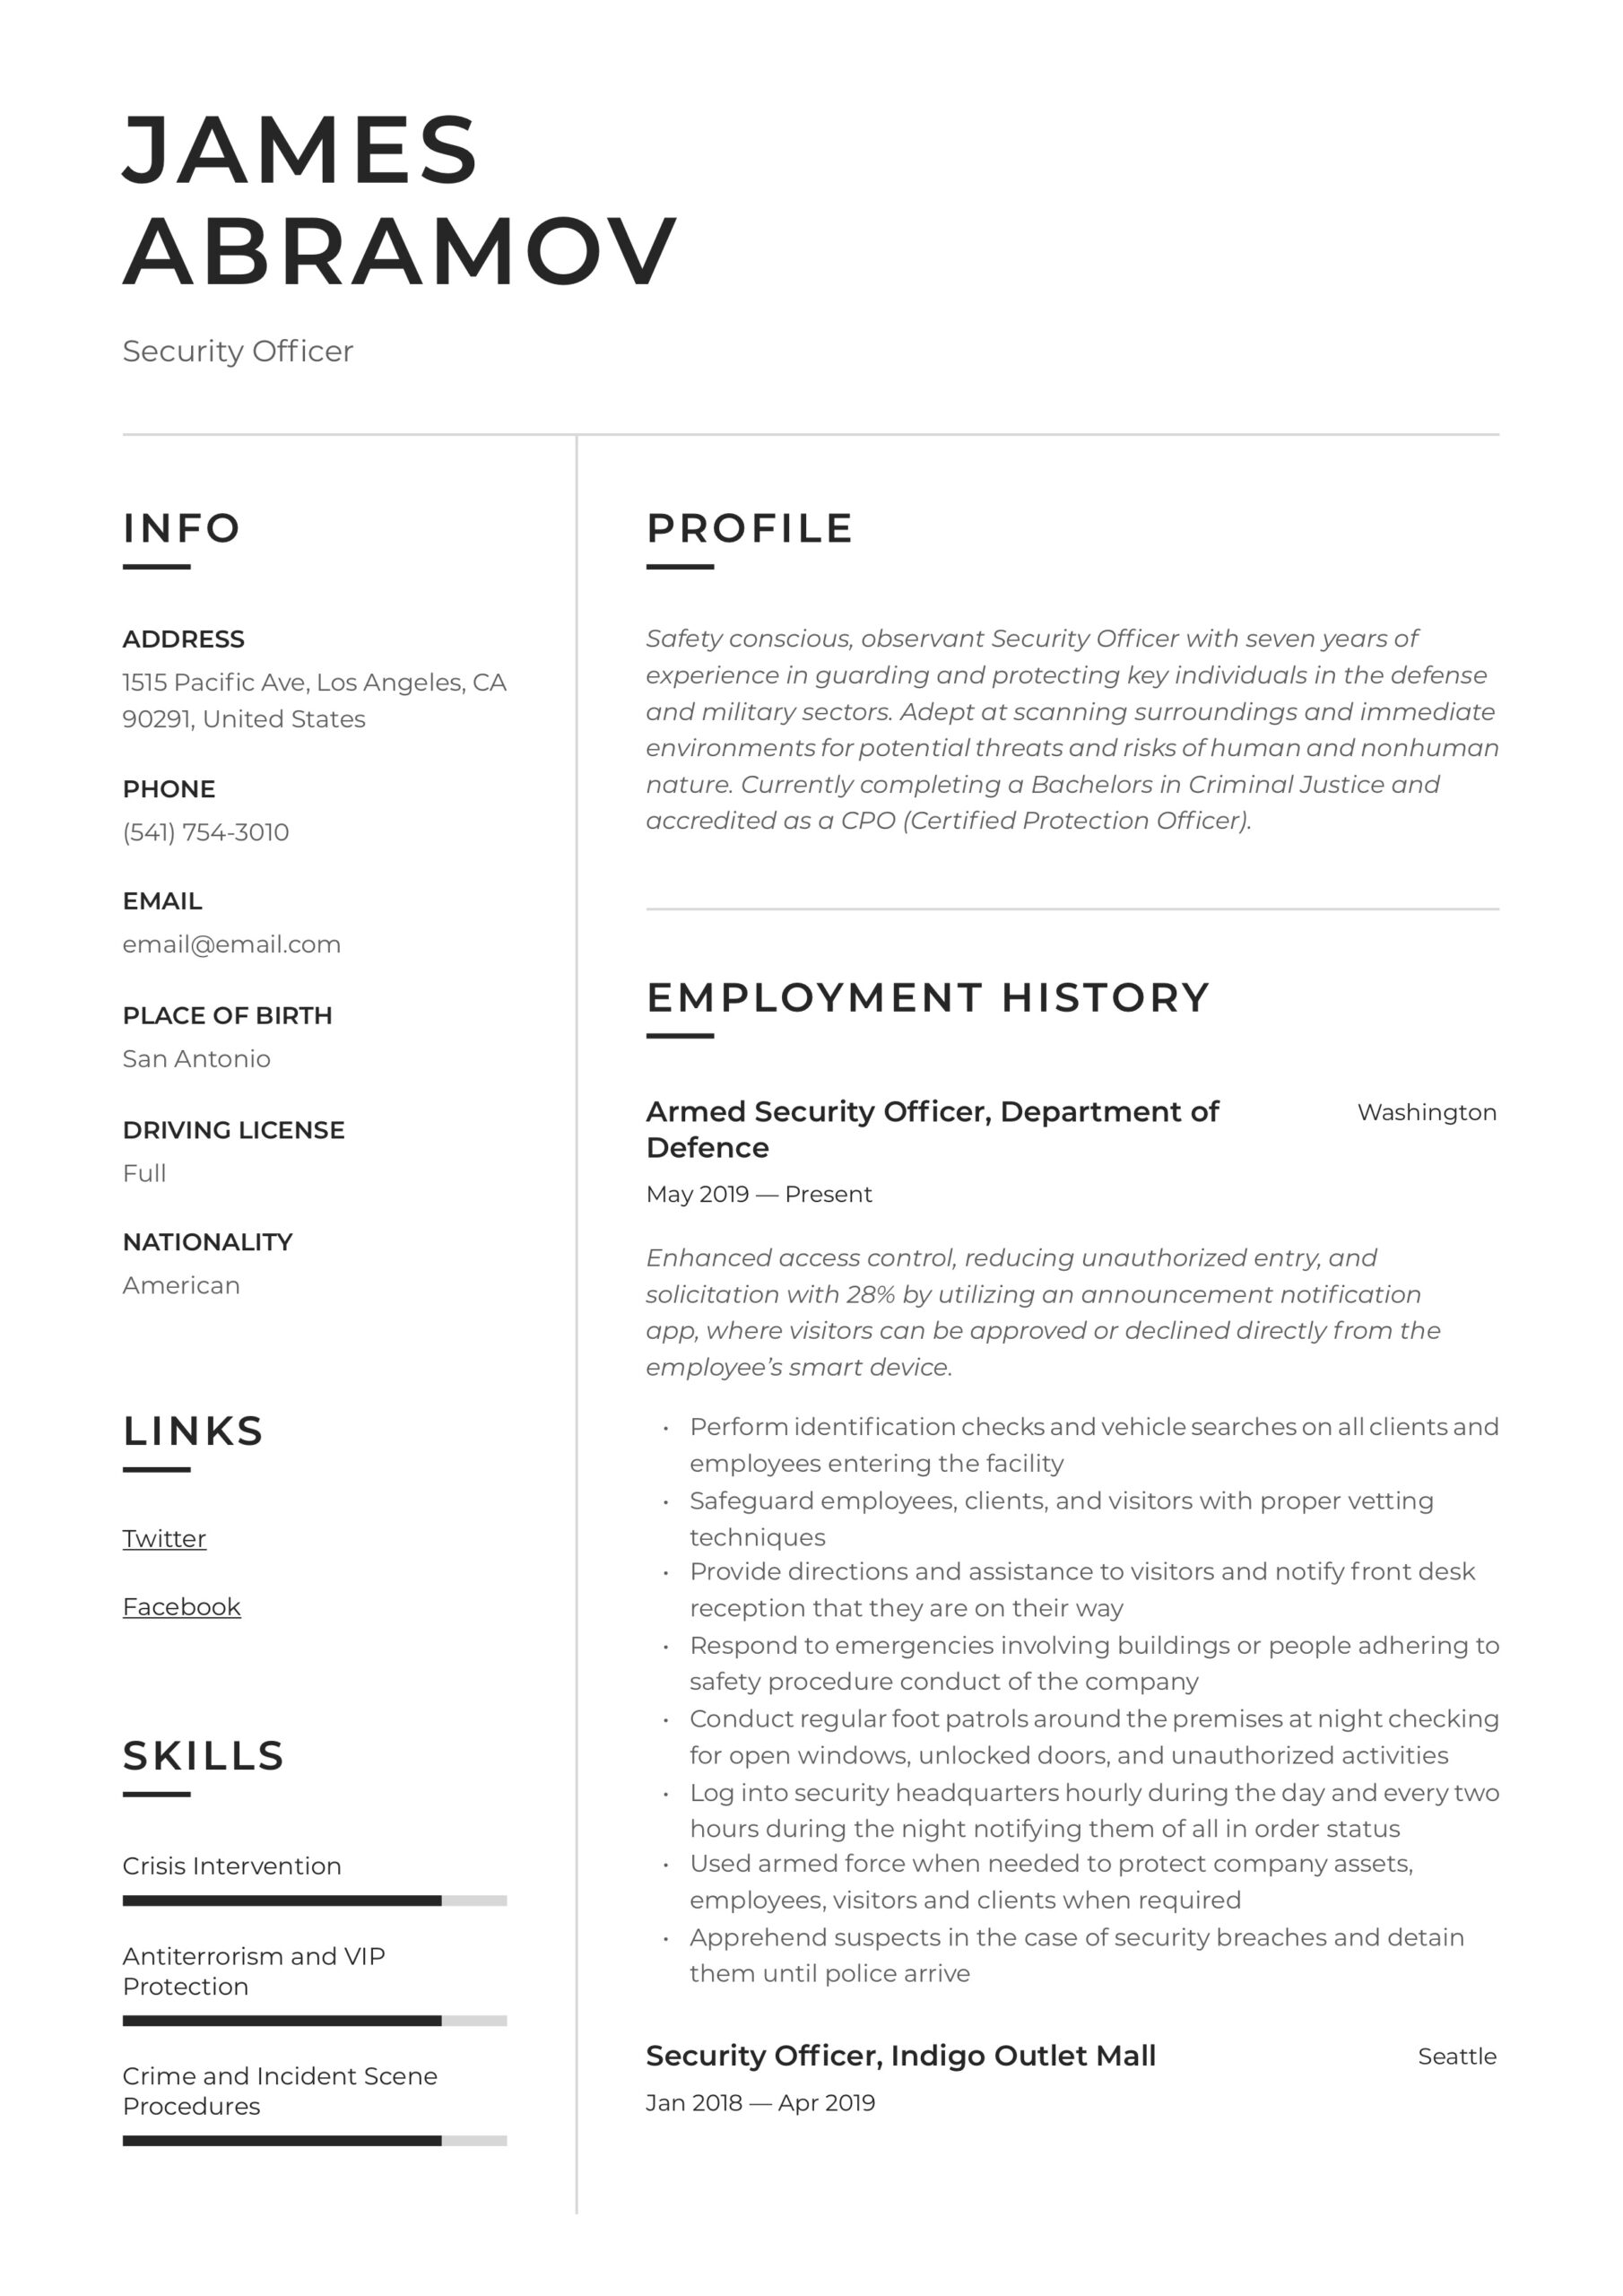 security officer resume writing guide examples truck driver job description for chef Resume Security Officer Resume Examples